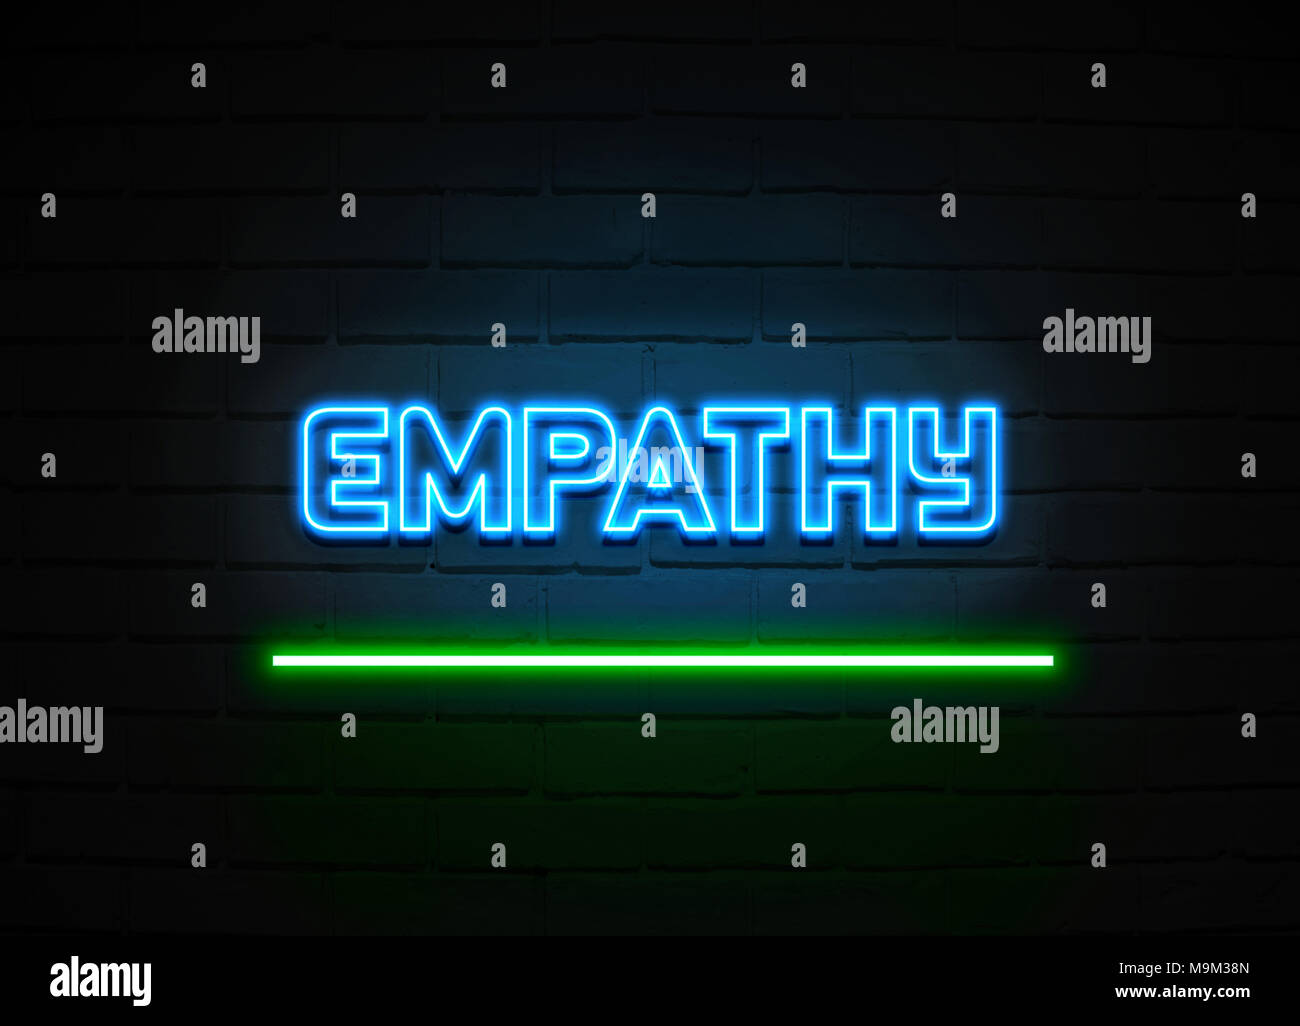 Empathy neon sign - Glowing Neon Sign on brickwall wall - 3D rendered royalty free stock illustration. - Stock Image